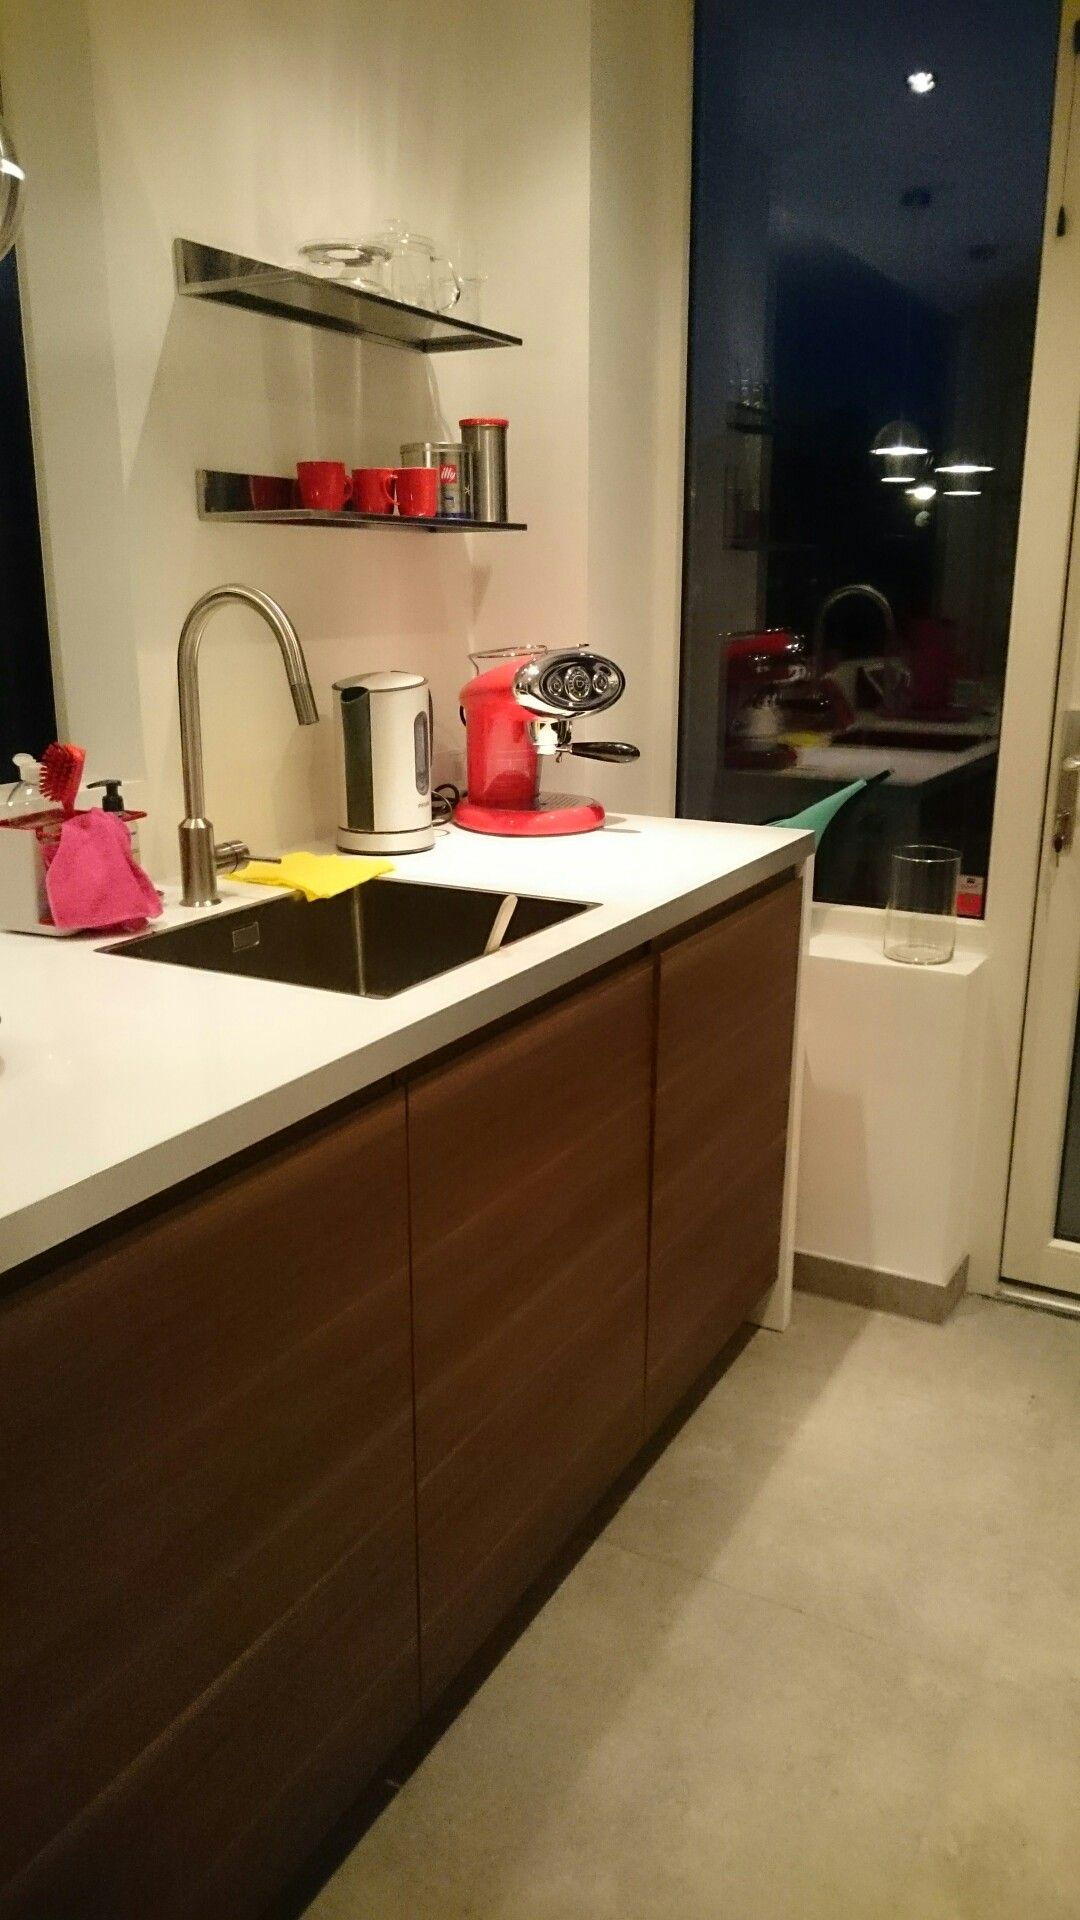 Ikea Voxtorp Ikea Voxtorp Walnut Kitchen Keuken Pinterest Walnut